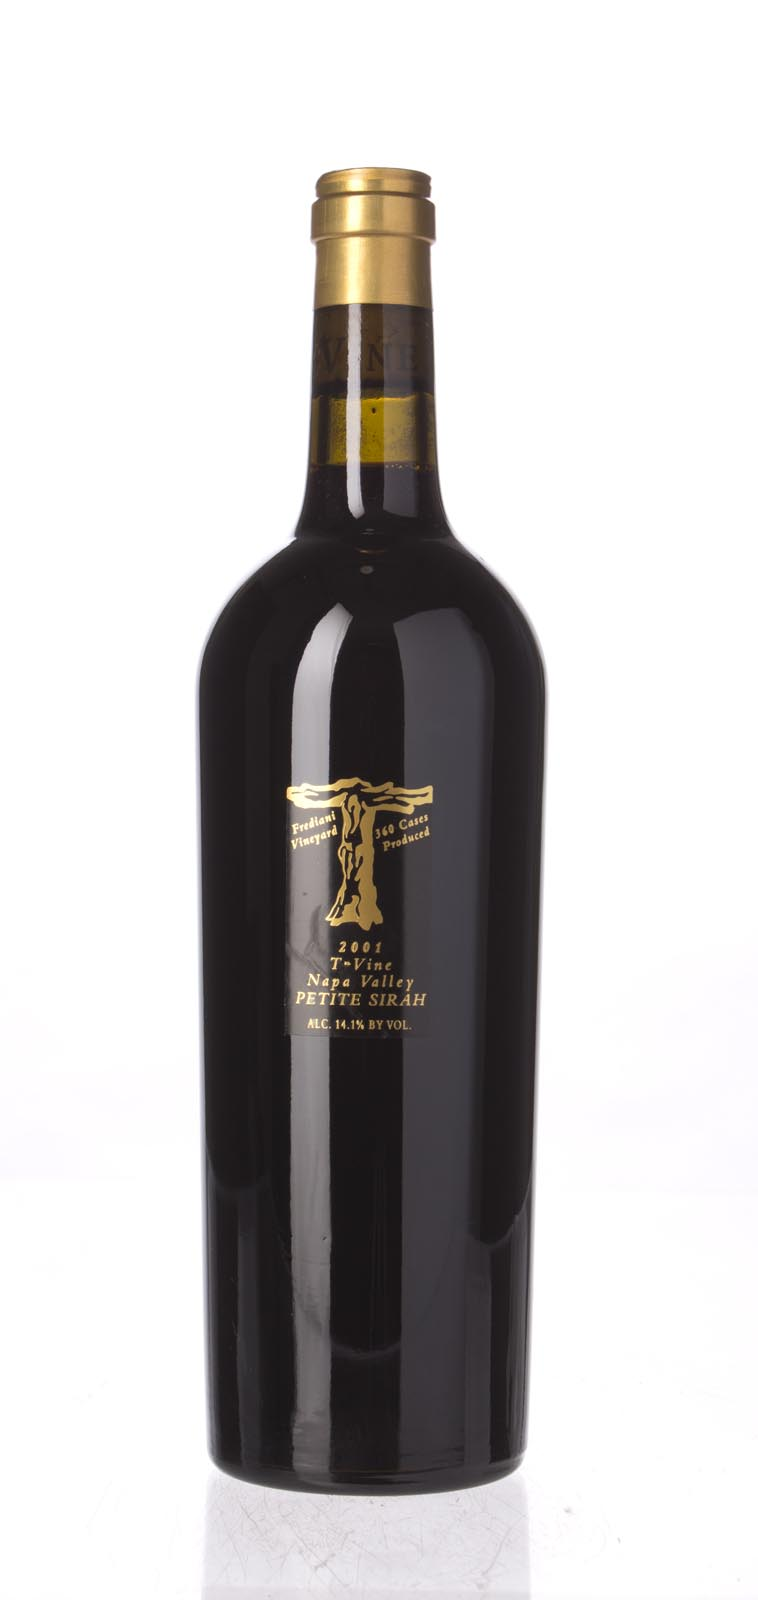 T Vine Petite Sirah Frediani Vineyard 2001, 750mL () from The BPW - Merchants of rare and fine wines.